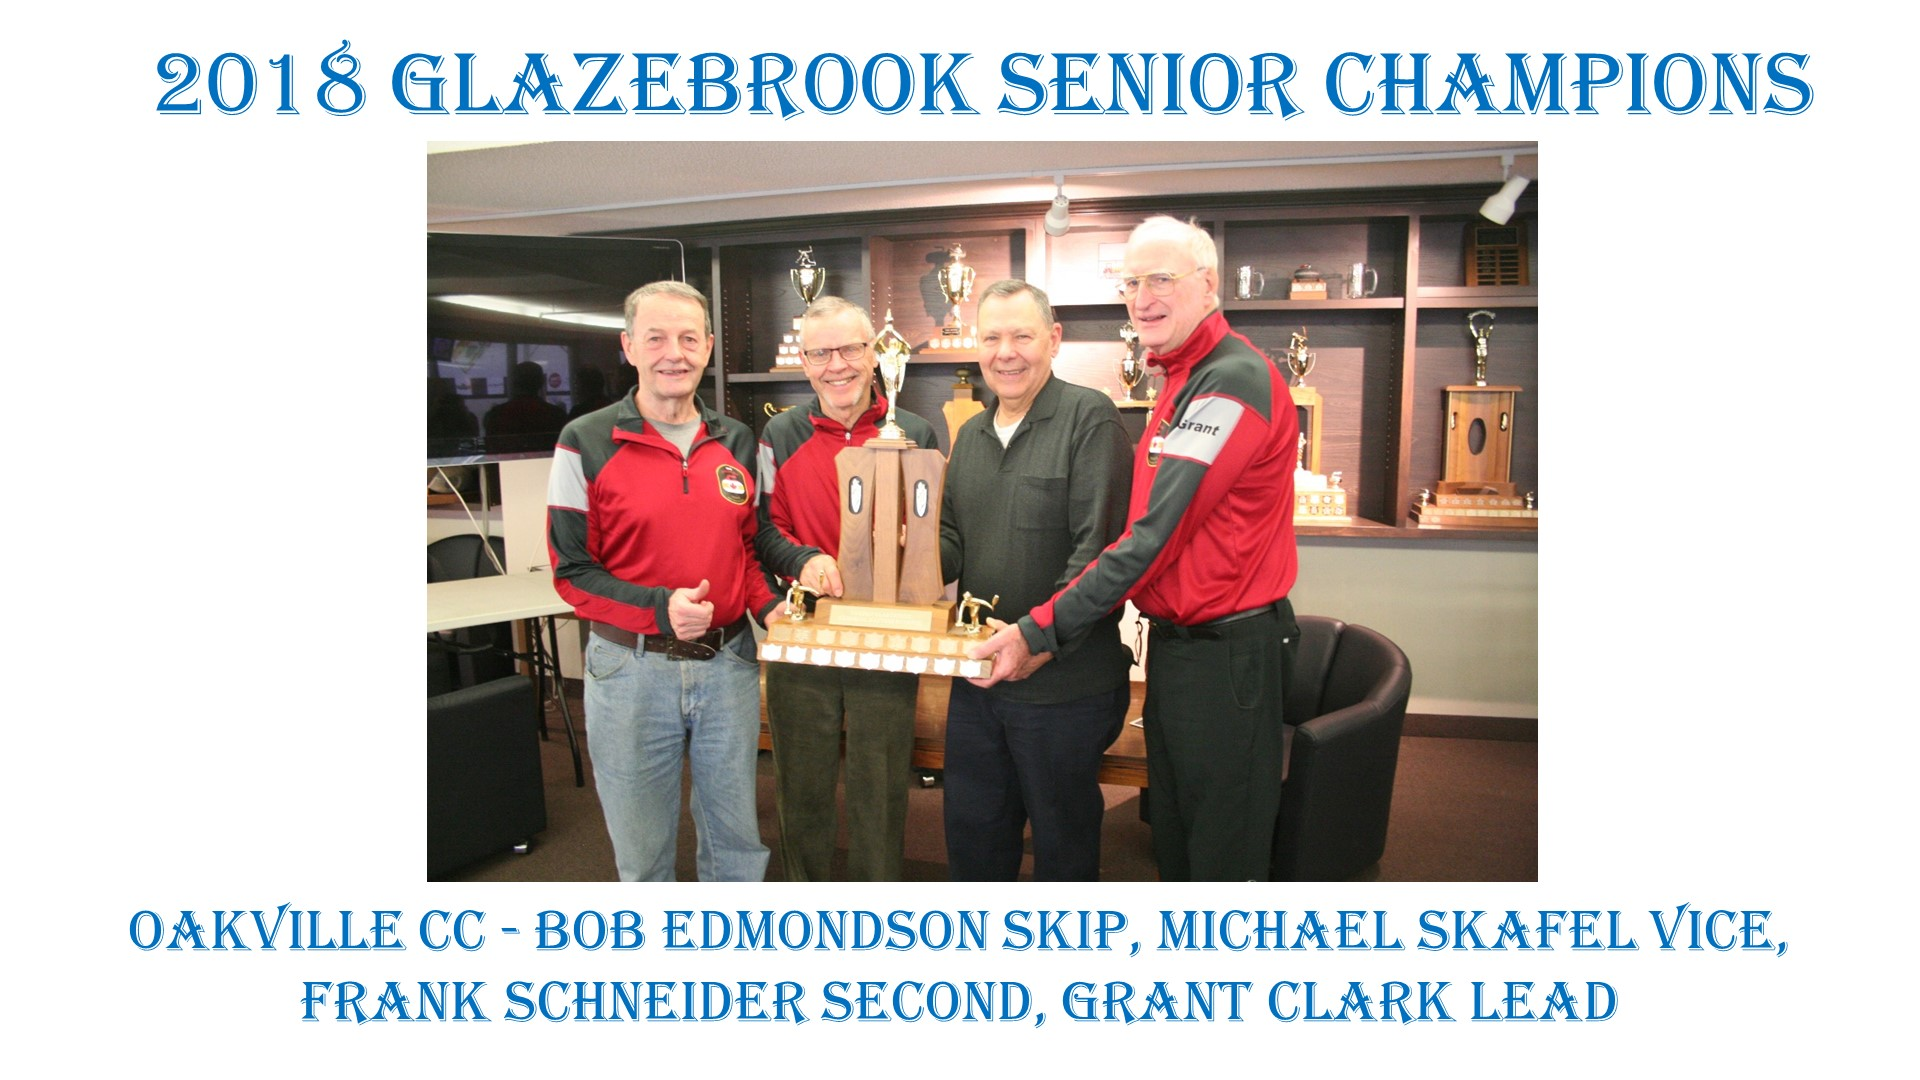 2018 Glazebrook Senior Winners with names